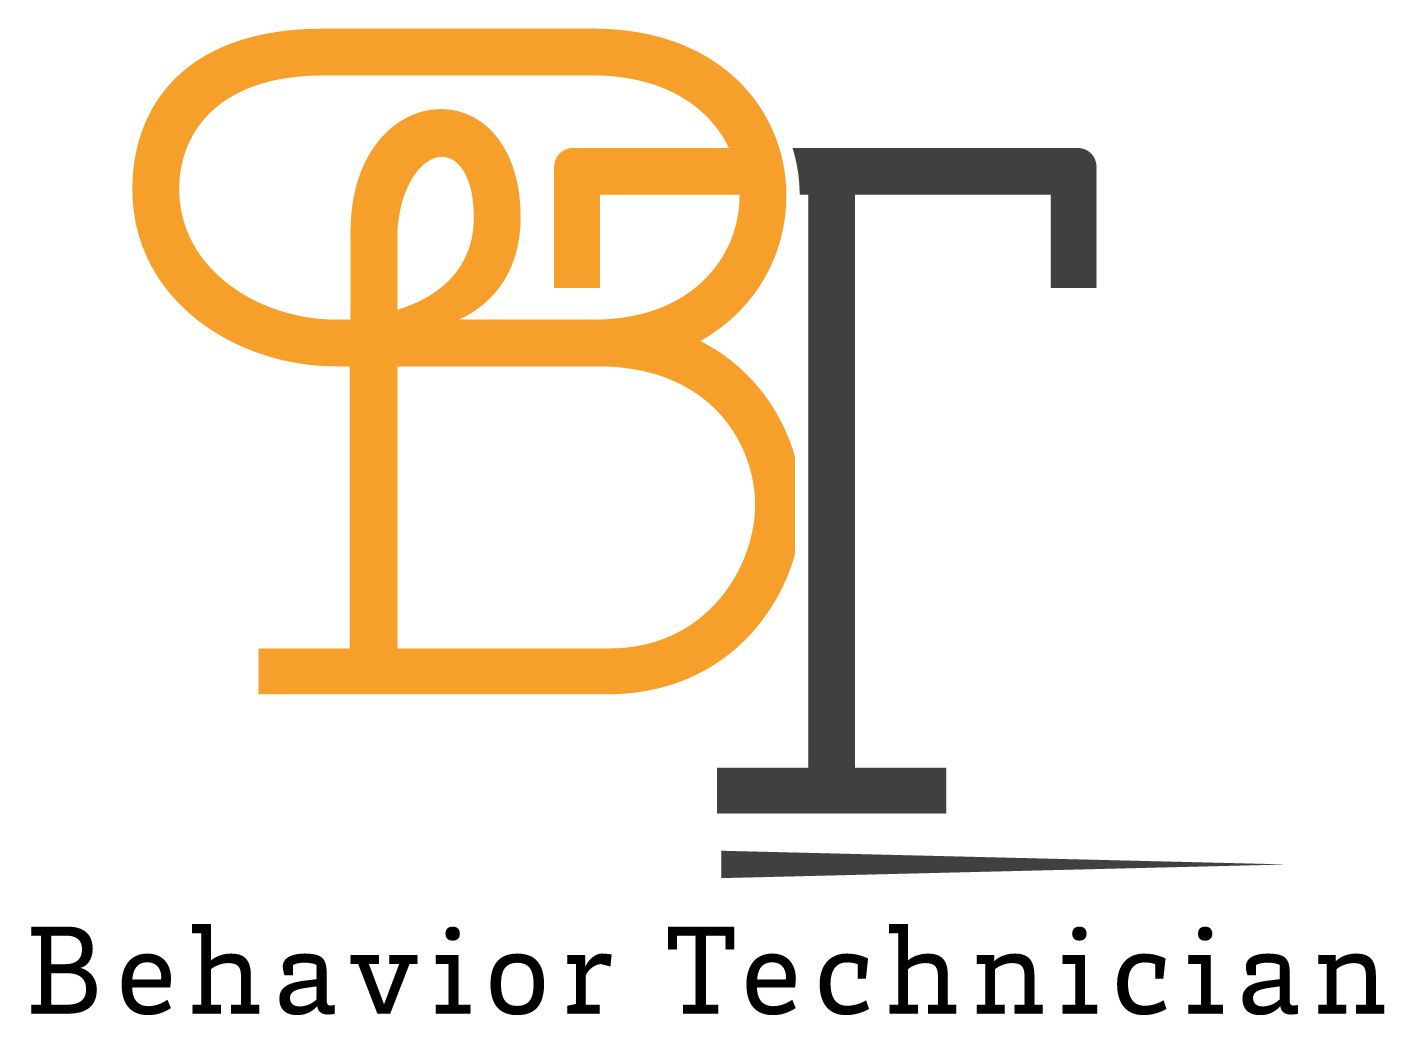 Aba certification programs aba courses coahs the behavior technician level one certificate program solves and accelerates training and credentialing for employees so you can begin reimbursable services 1betcityfo Images